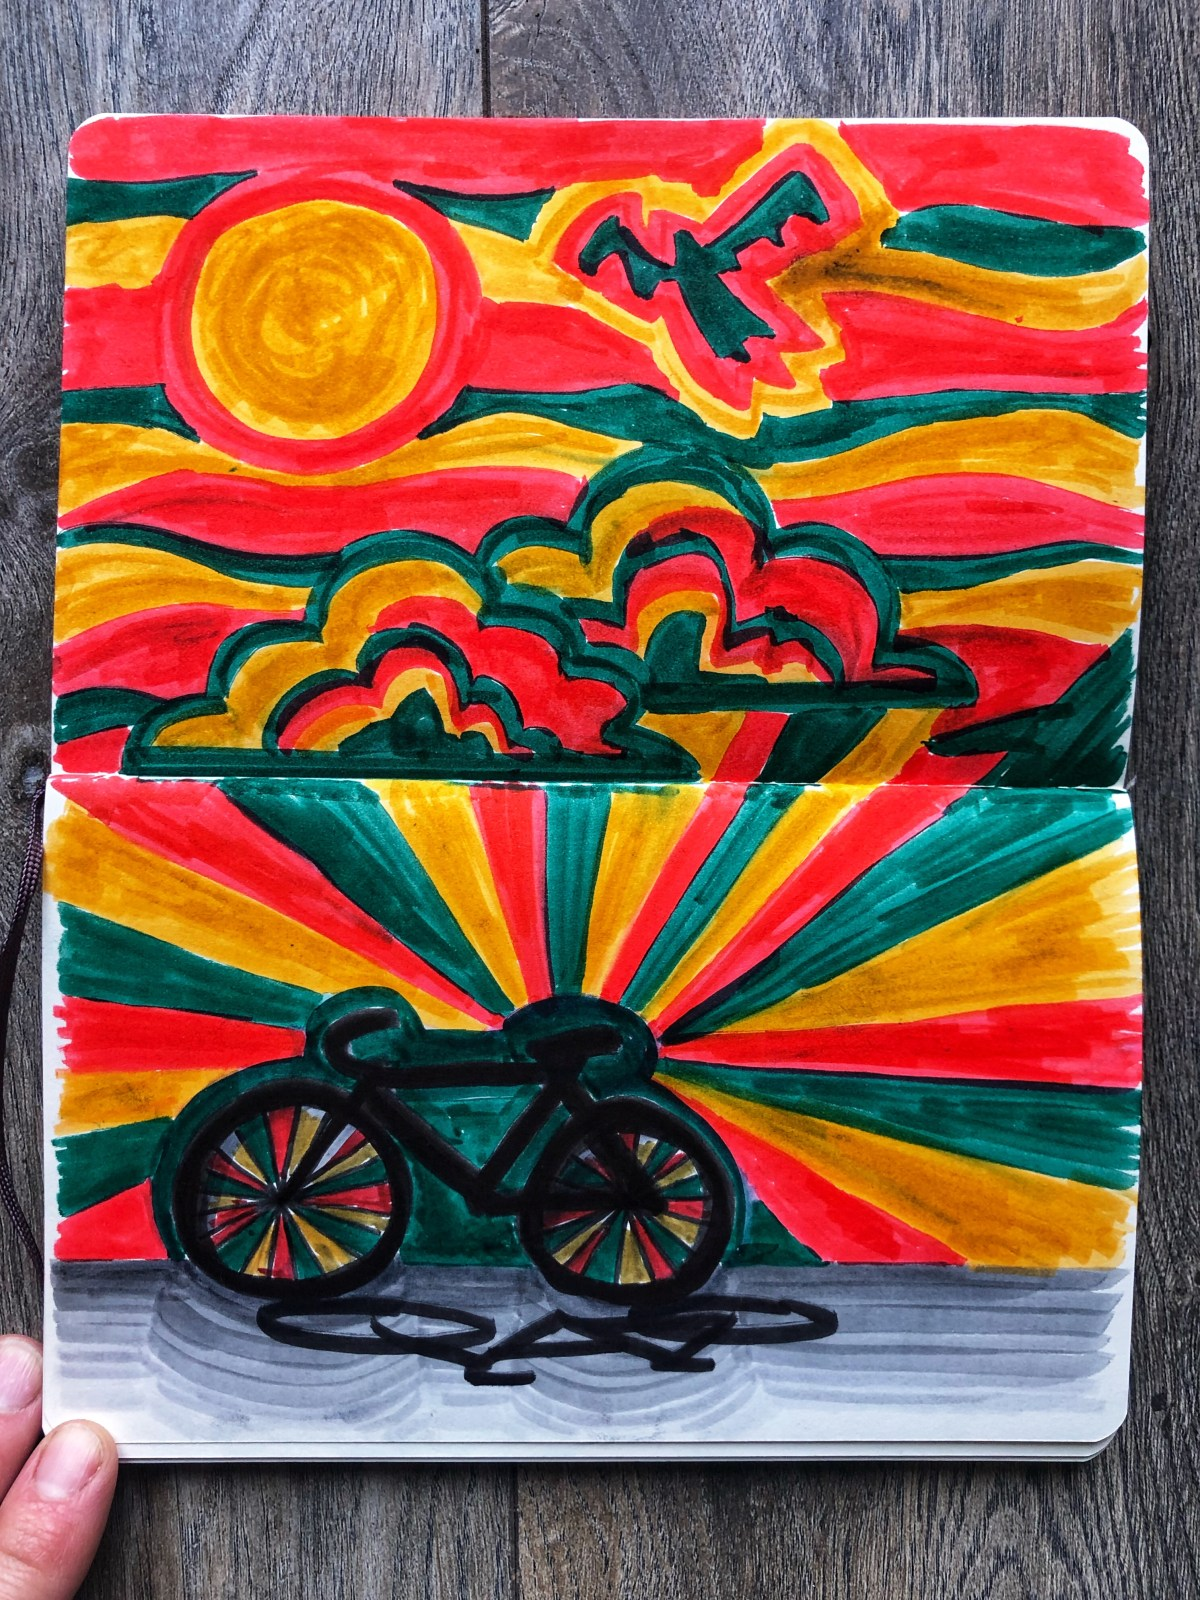 Color illustration of a bike and clouds.